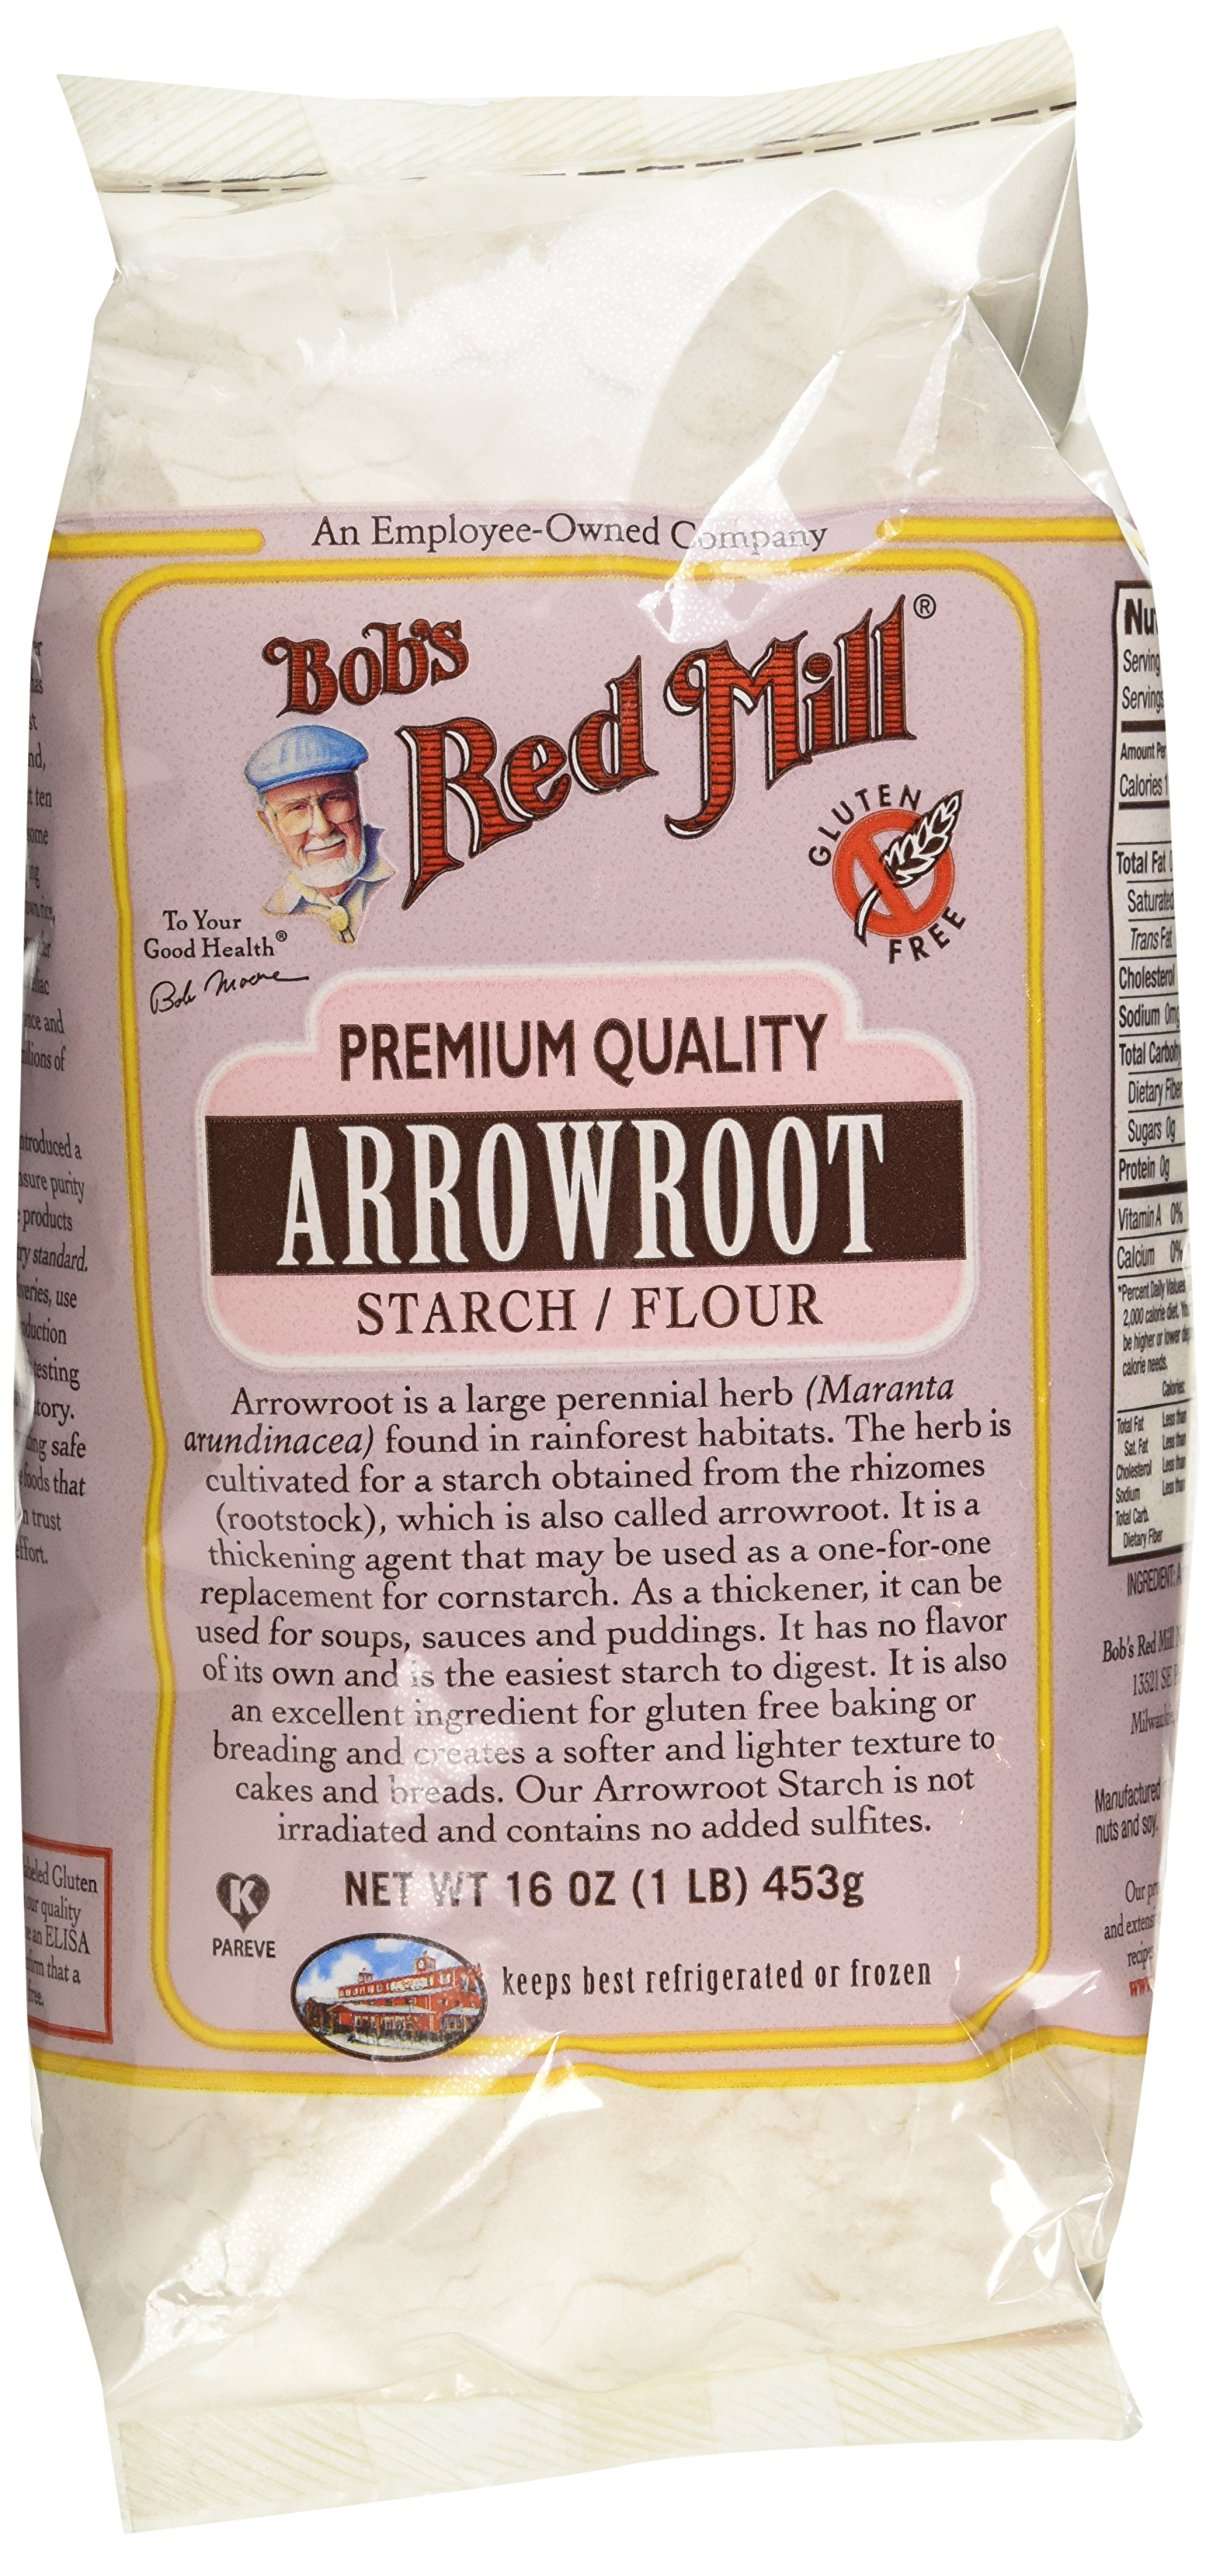 Bob's Red Mill Arrowroot Starch / Flour, 16 Ounces (Packaging May Vary) by Bob's Red Mill (Image #2)